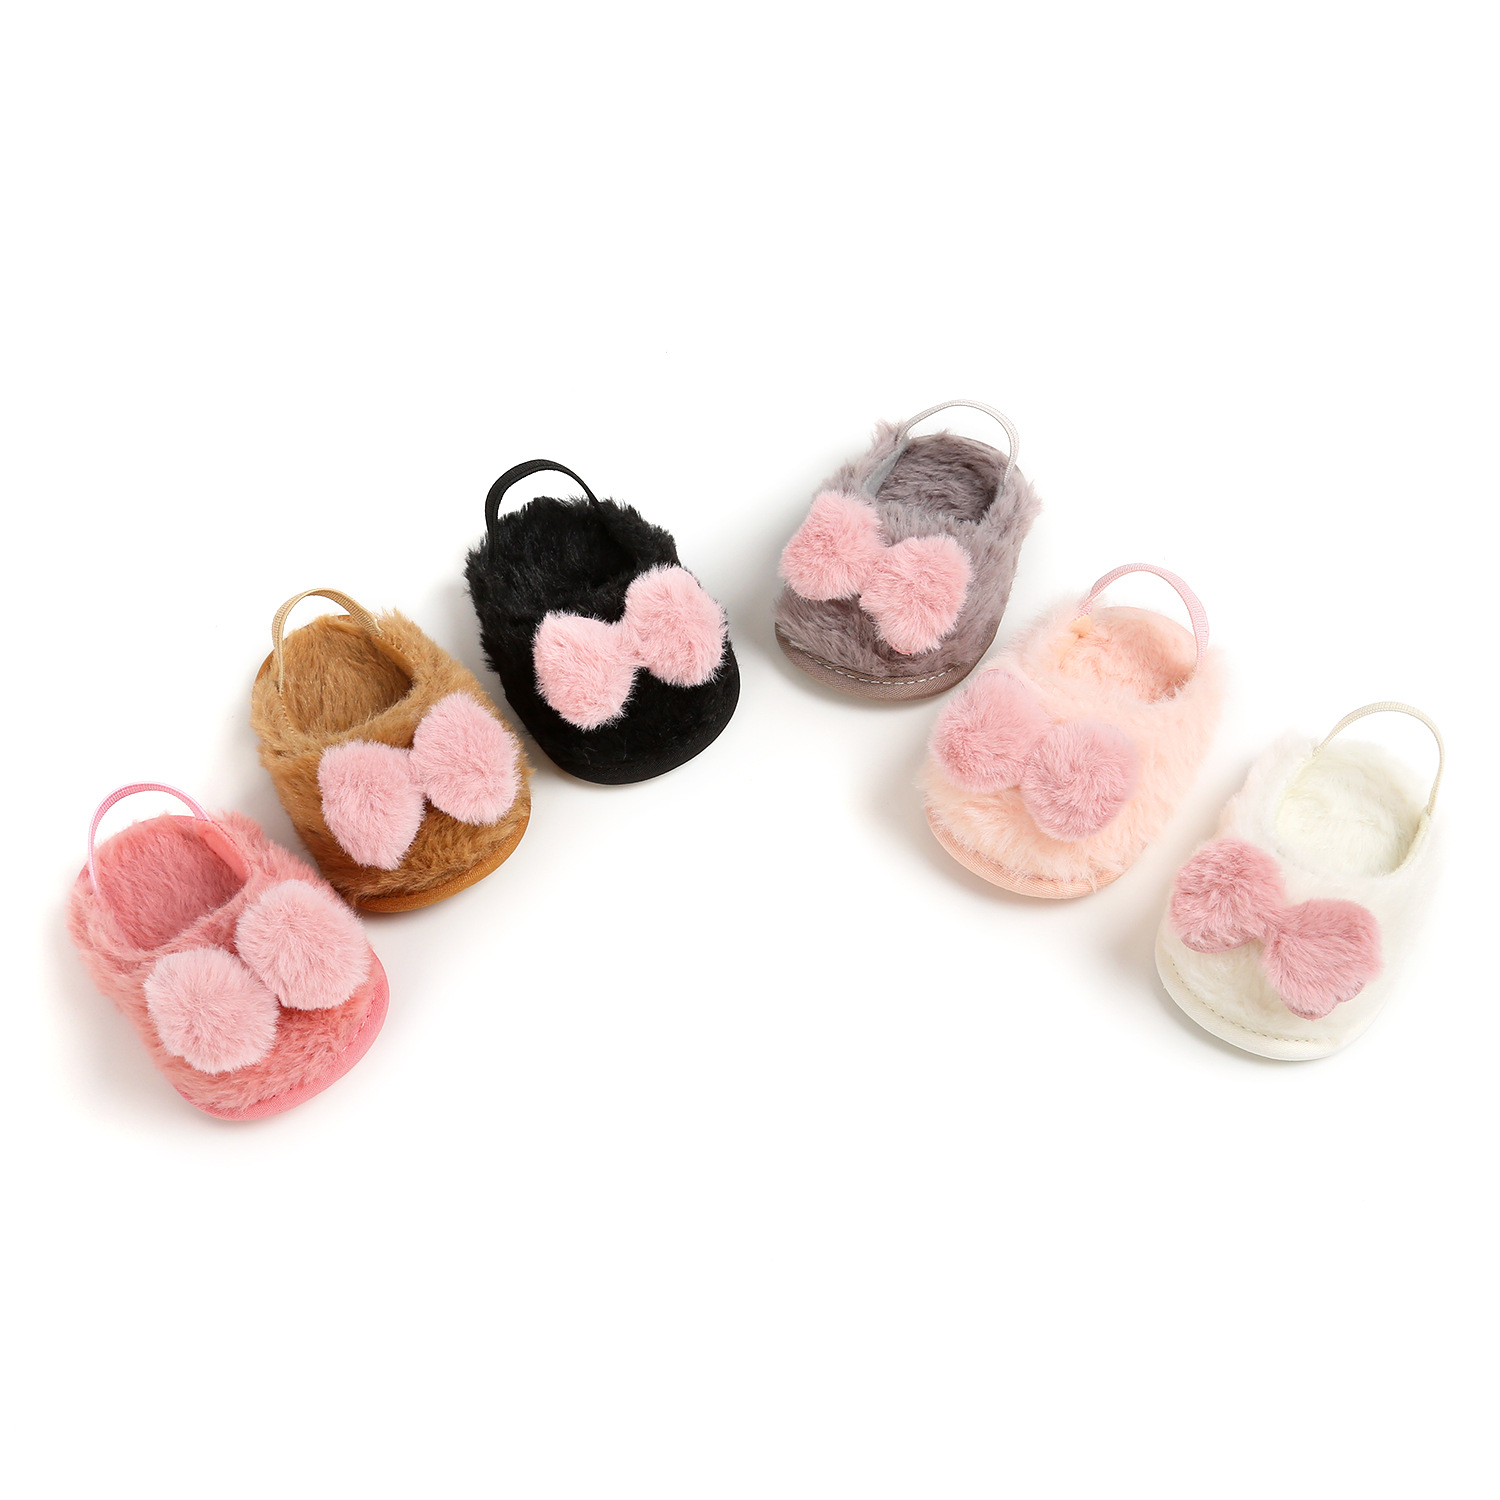 0-18M Newborn Infant Baby Girls Crib Shoes Soft Plush Bow Princess Shoes Toddler Girls Gifts